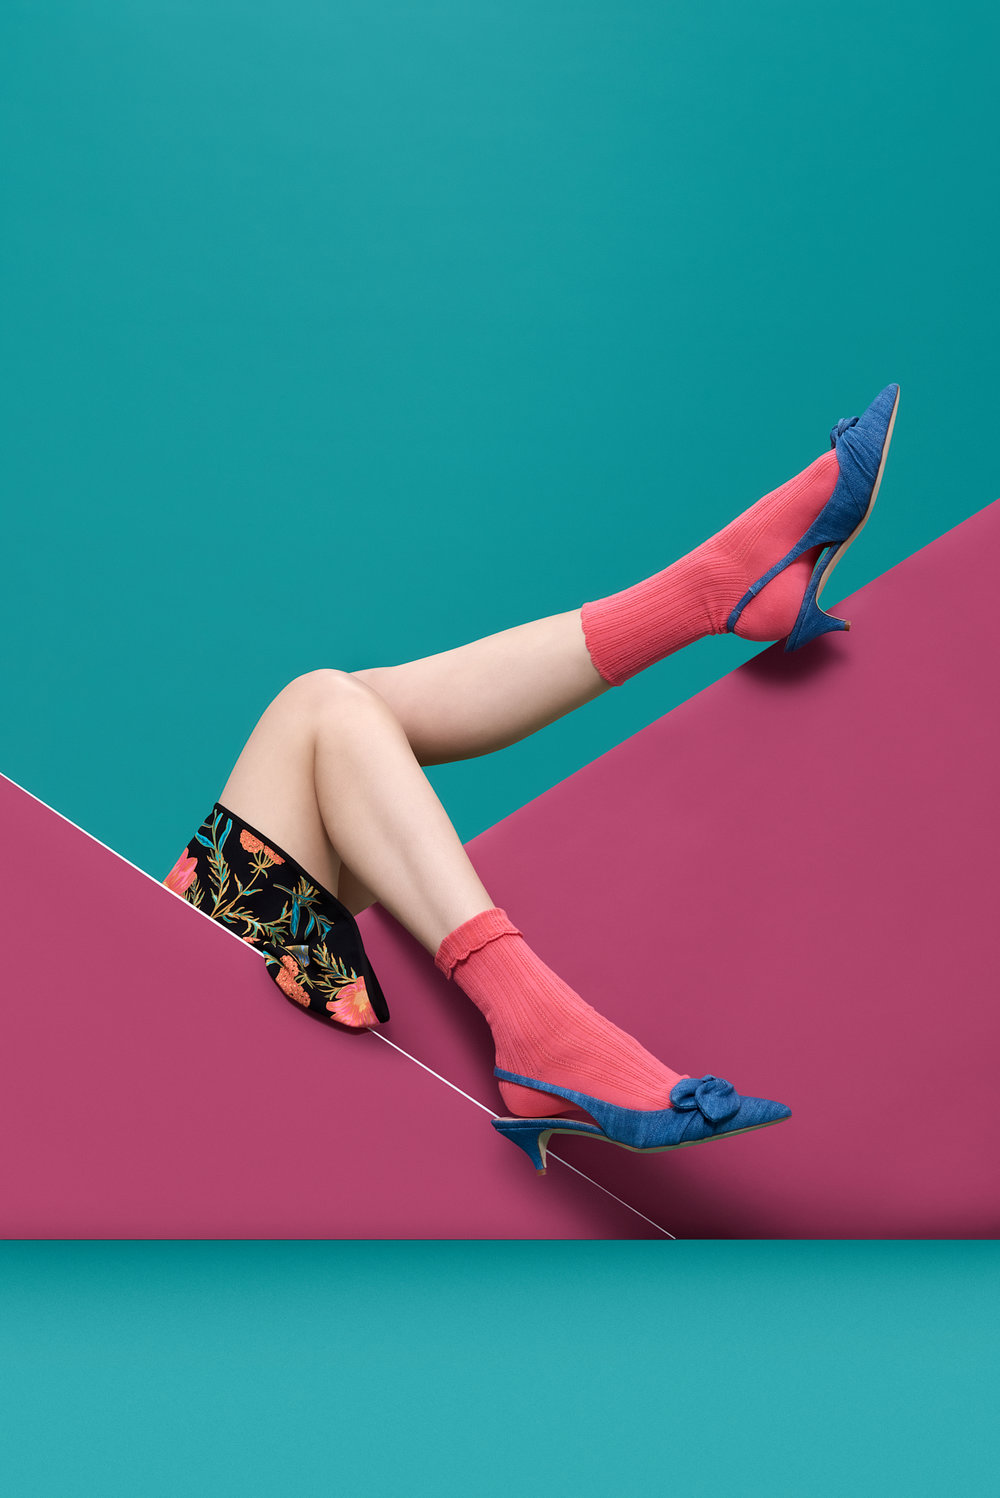 Kate-Spade-Purple-Cyan-Shoes-Still-Life-Sentence.jpg